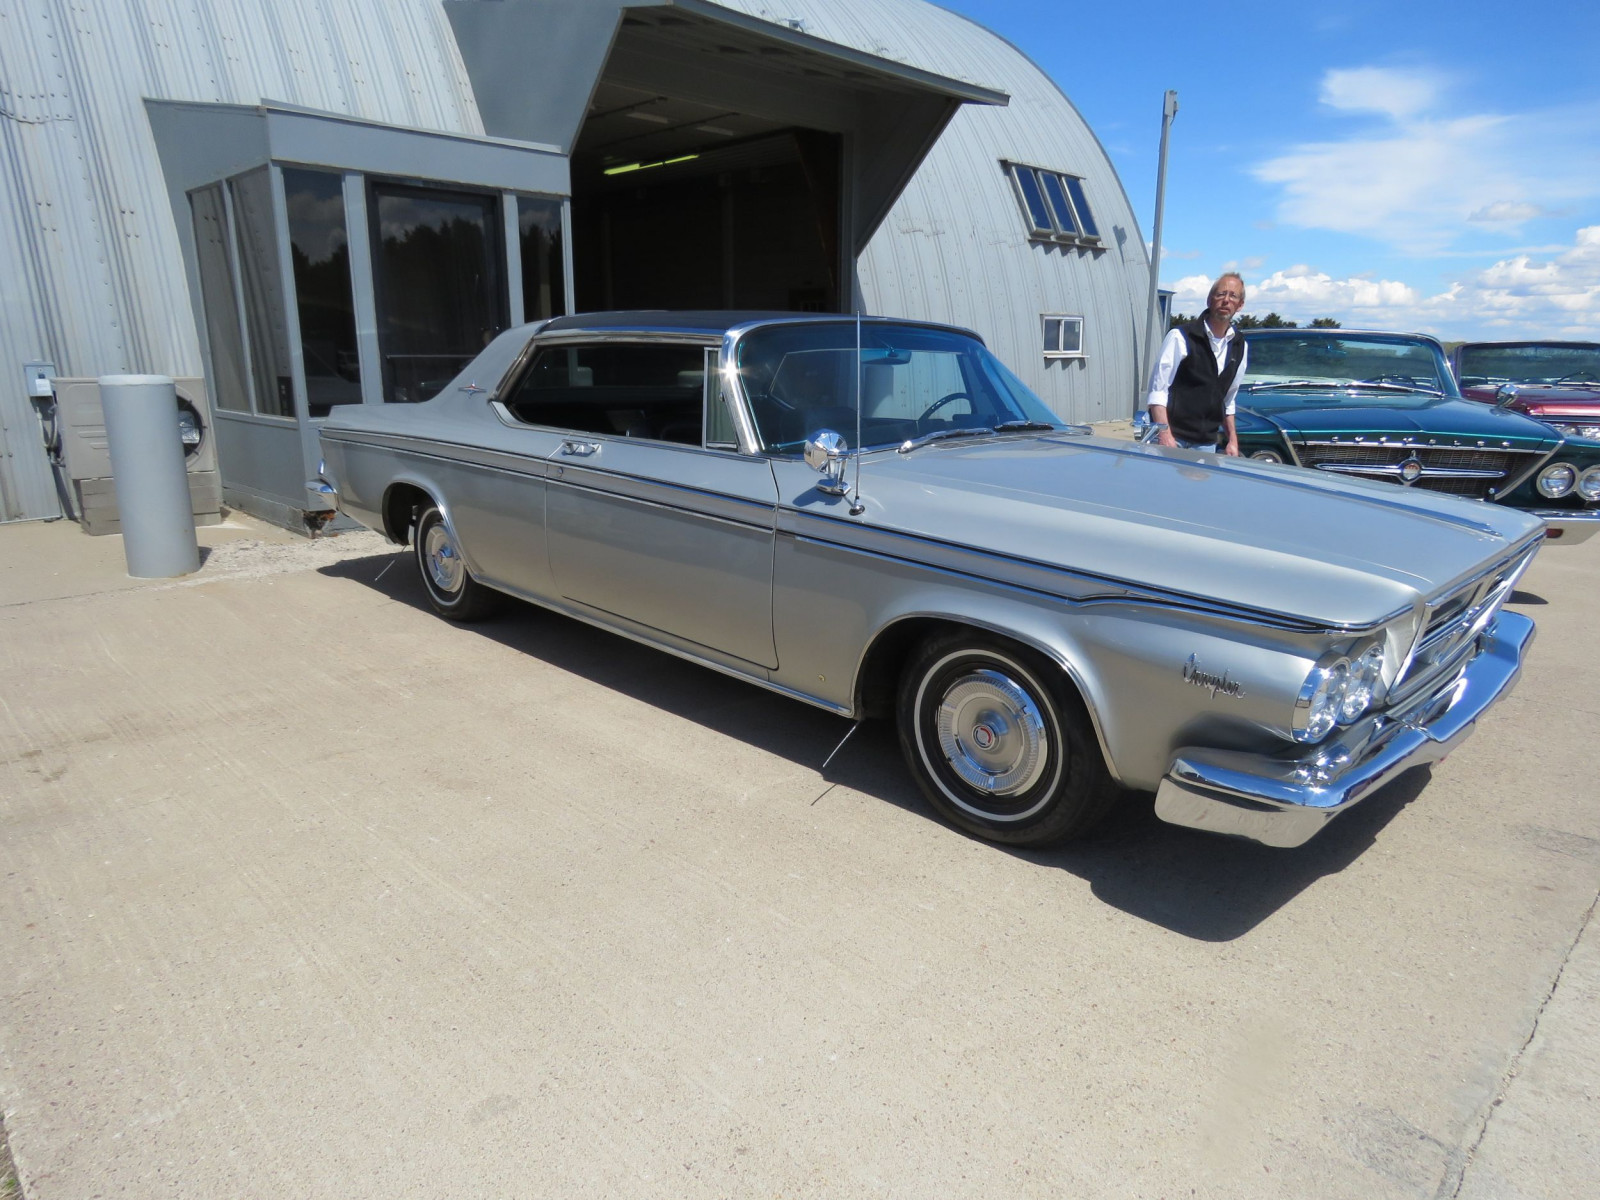 1964 Chrysler 300 Silver Edition 2dr HT - Image 5